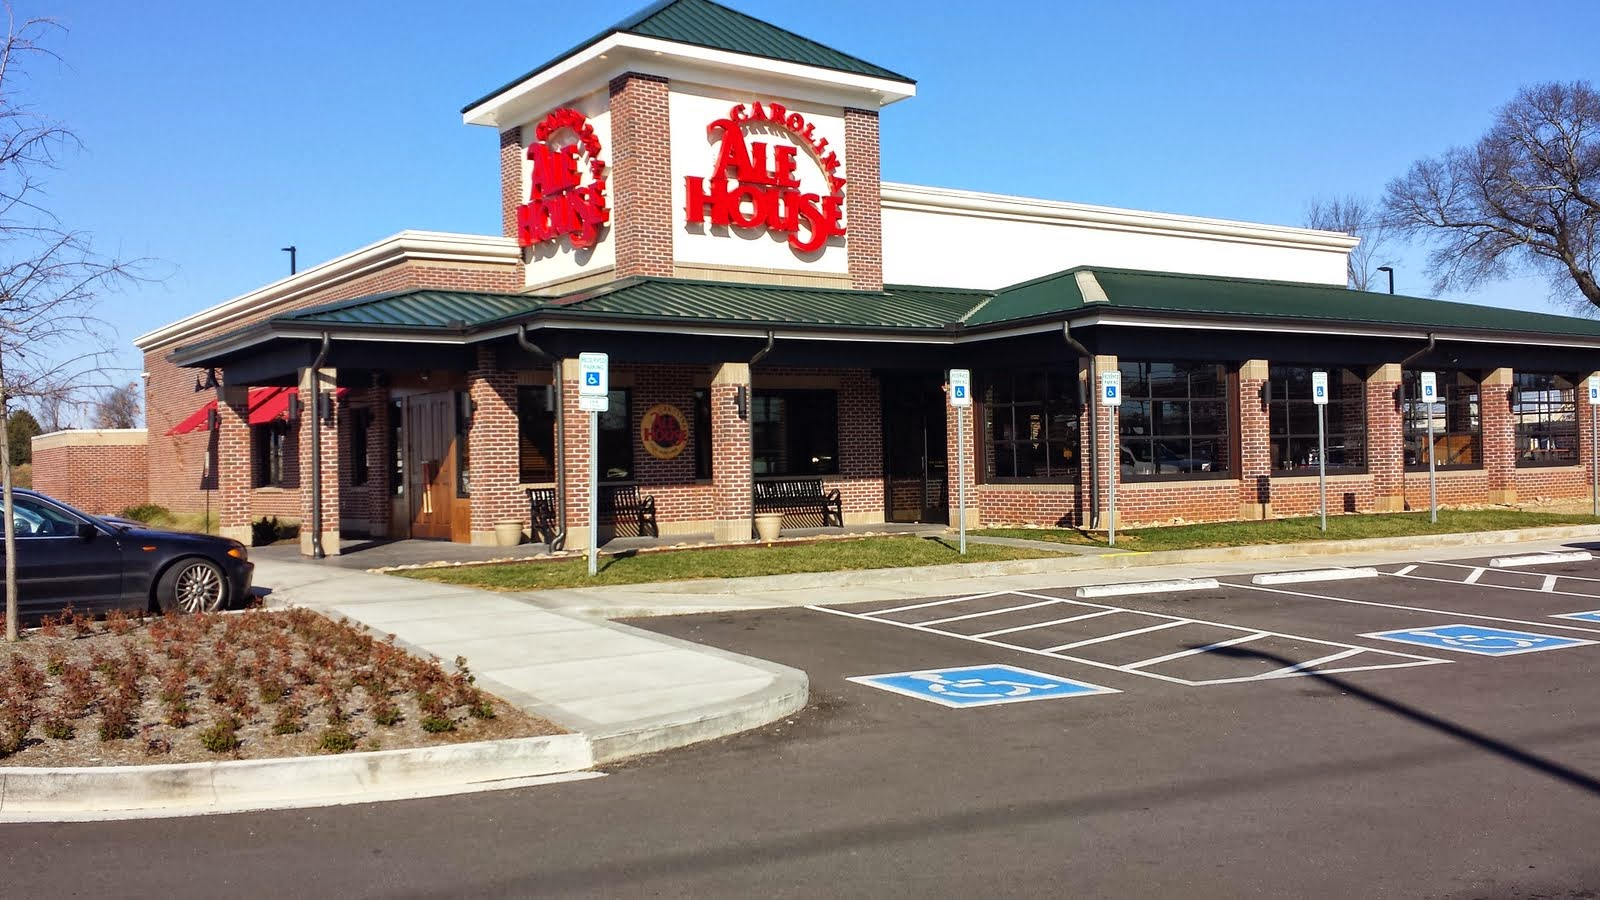 Ale House Deerfield Beach: Big Daddy Dave: Another Restaurant Chain Comes To Town